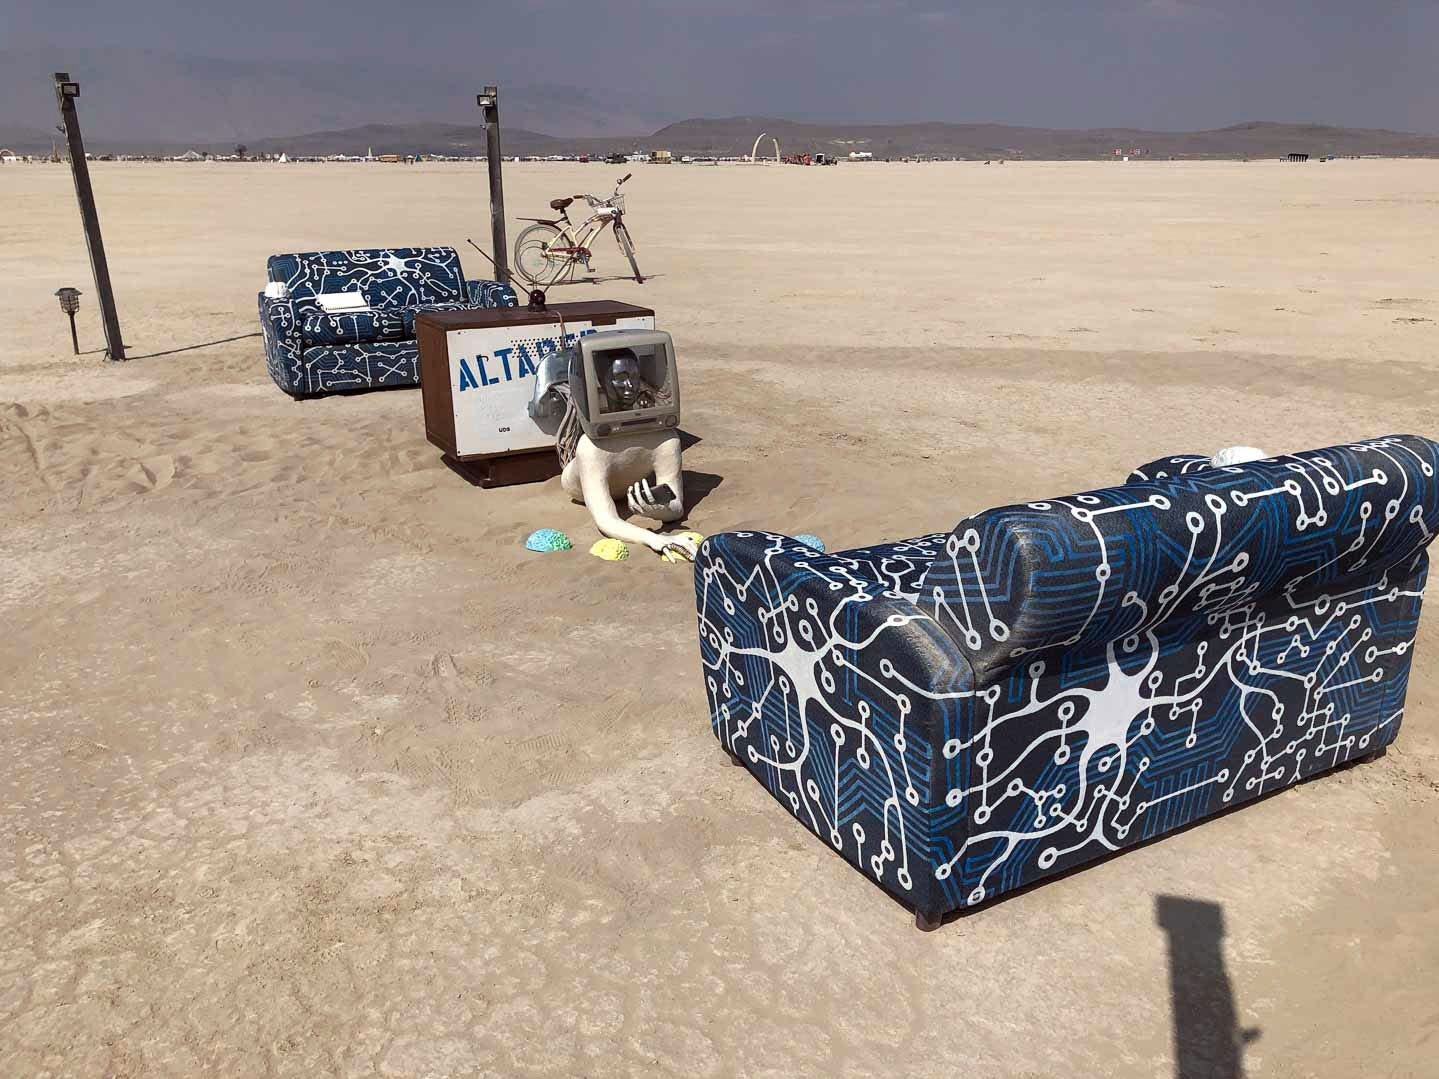 In the deep playa during Burning Man 2018, a scene is arranged with two couches facing a mirrored TV on one side, and a person coming out of a computer, holding a smart phone on the other. Burners are invited to write notes in a notebook on the two couches.